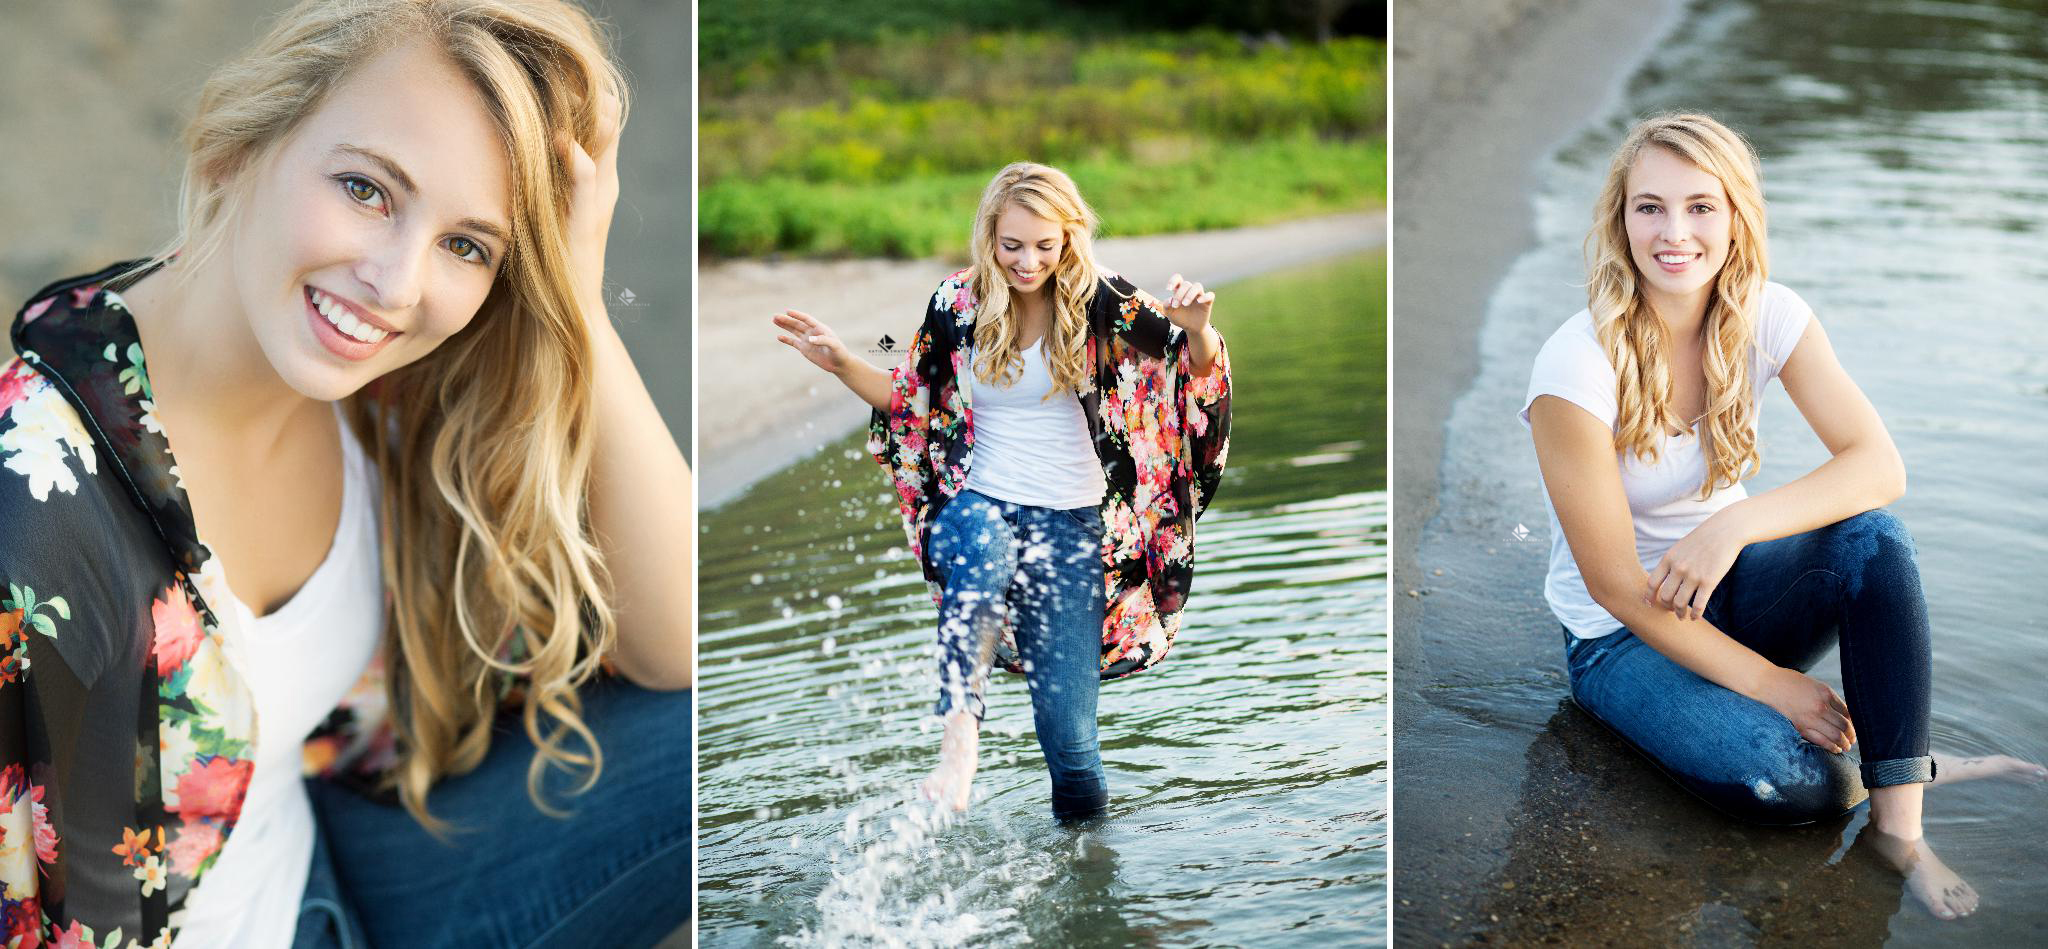 Water Senior Images by Katie Swatek Photography | Midwest Senior Images by Katie Swatek Photography